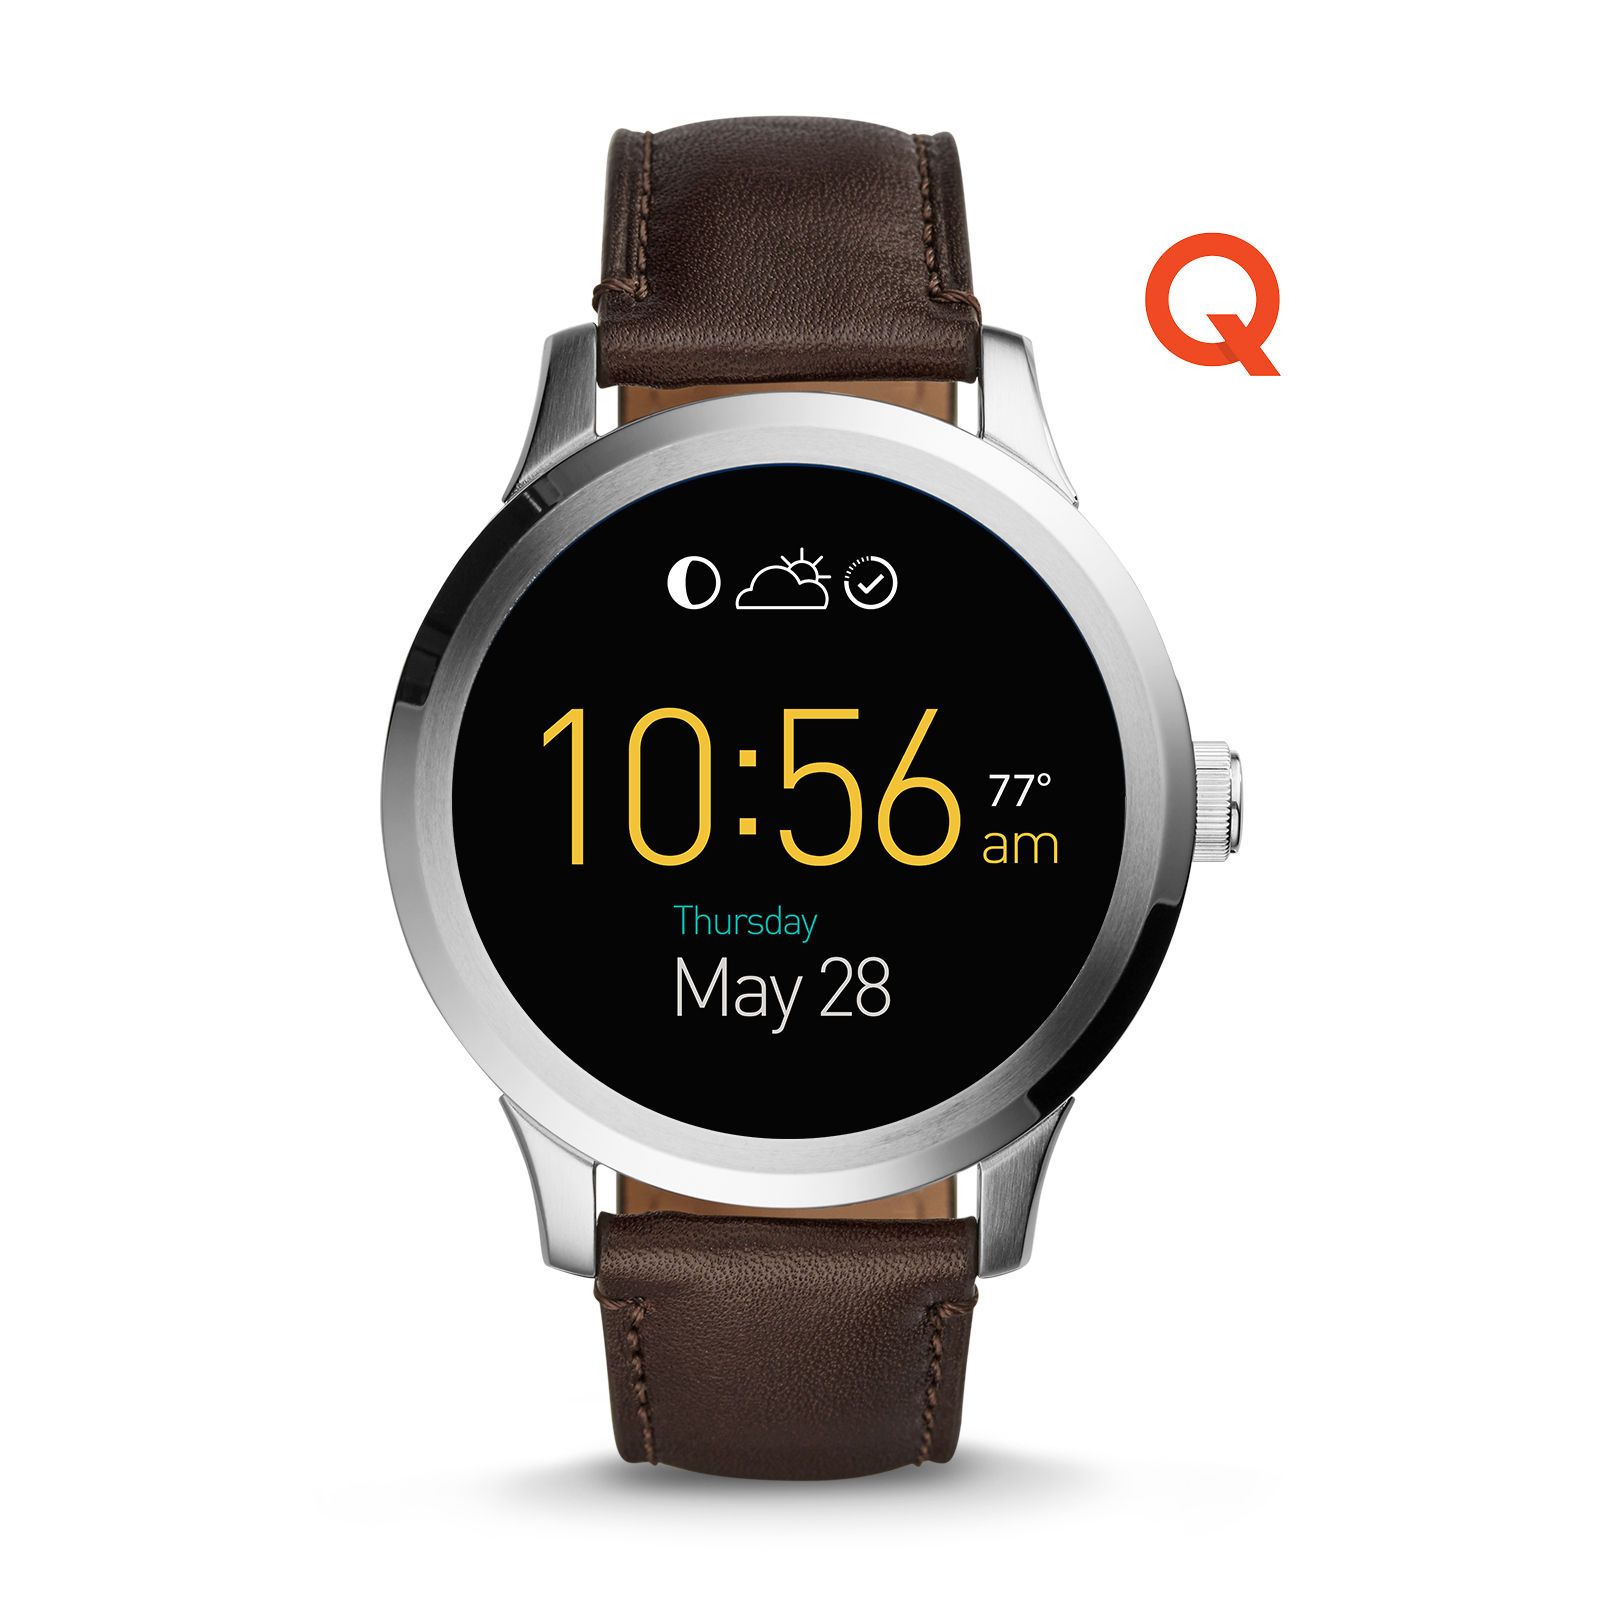 Review Fossil Q Founder Smartwatch from Fossil.